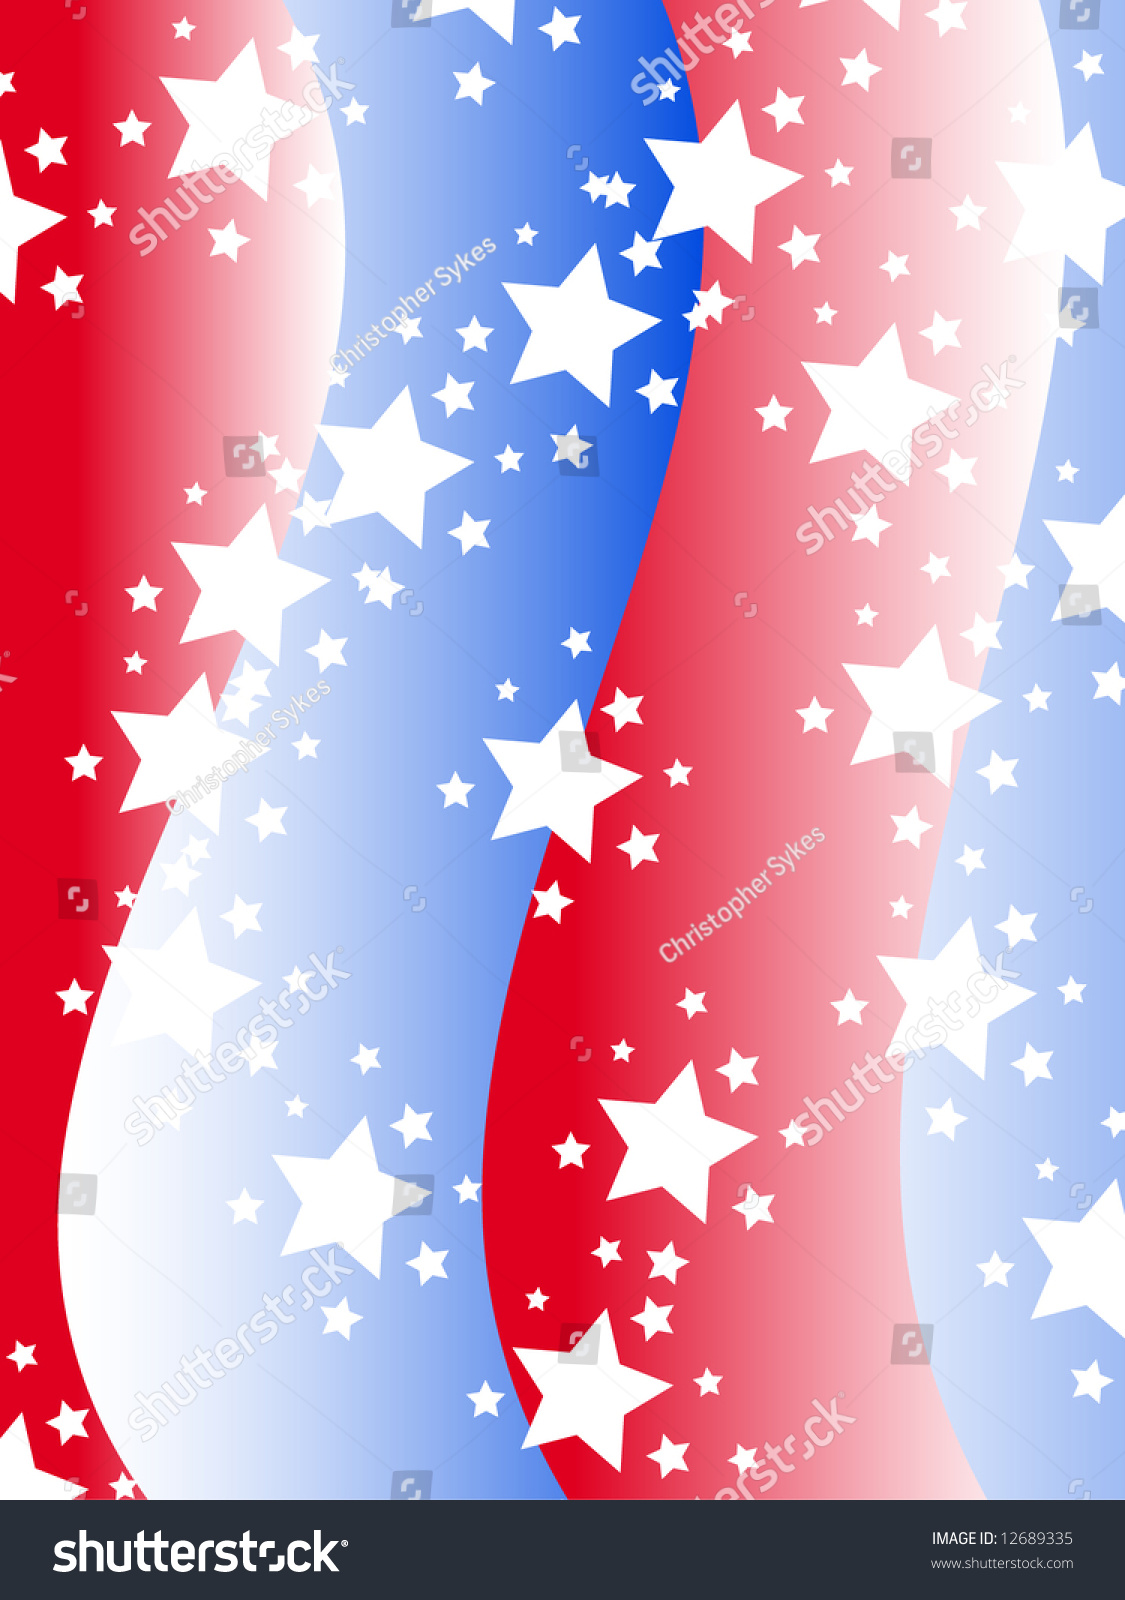 patriotic background with stars and stripes in red white